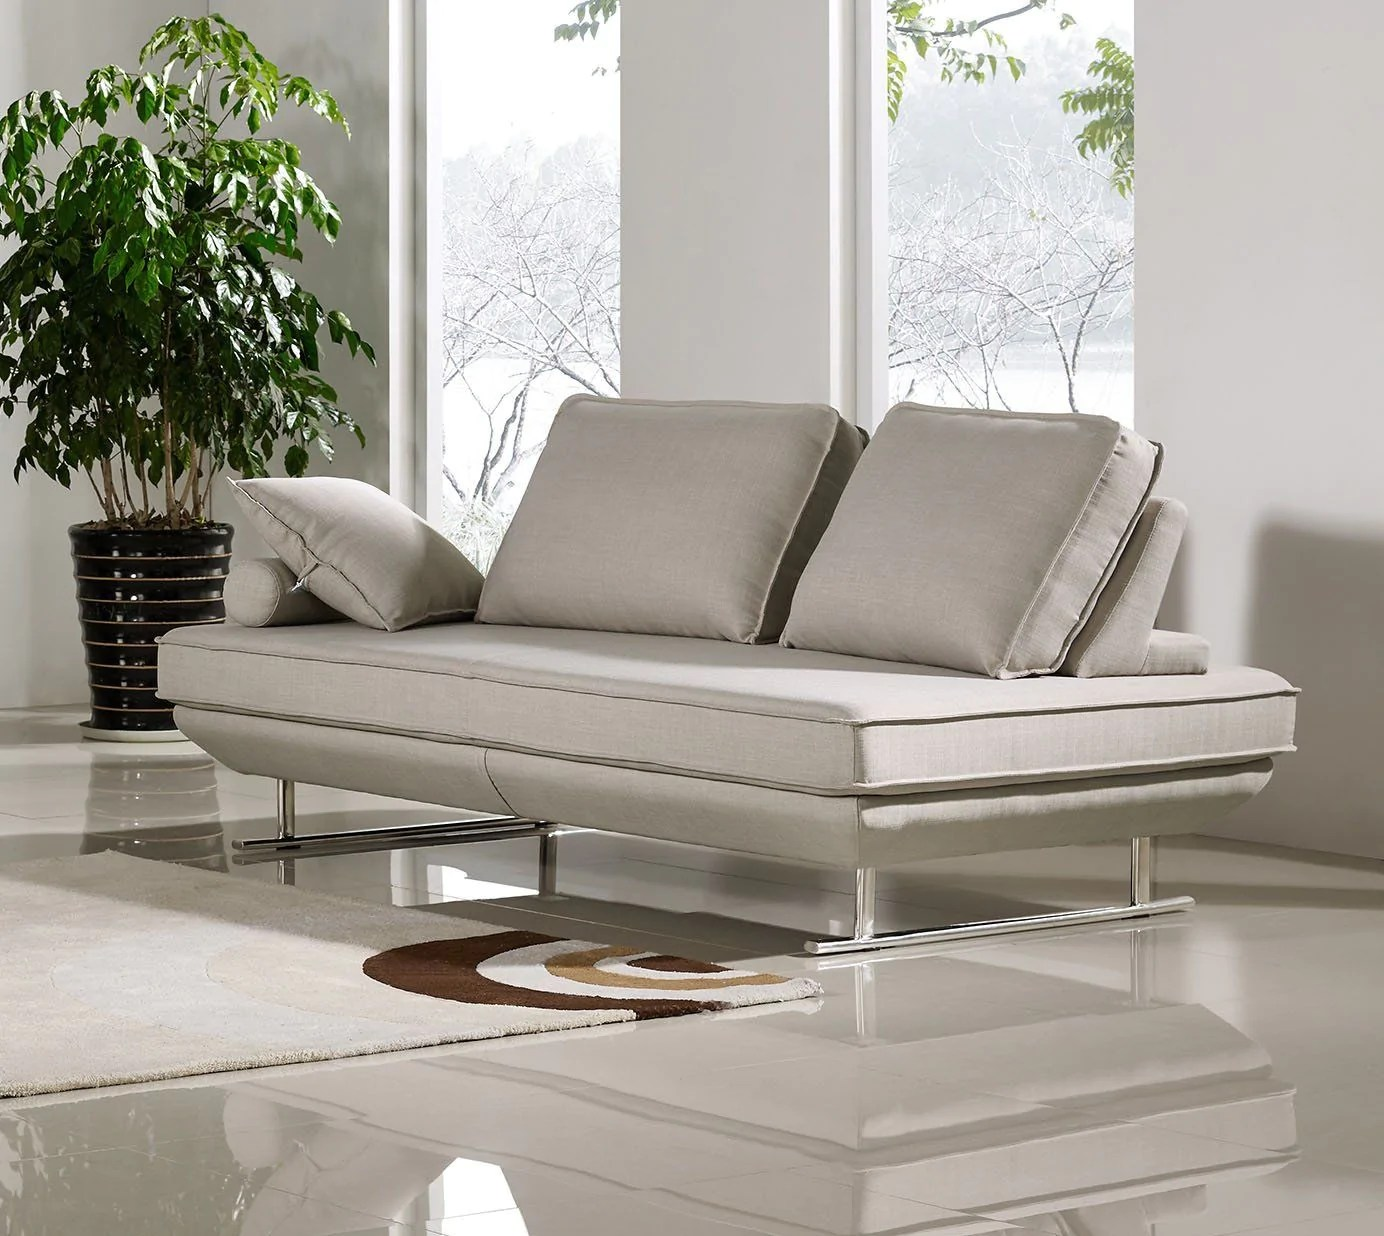 diamond sofa dolce high quality sofas amazing deal on dolcelgsd2 lounge